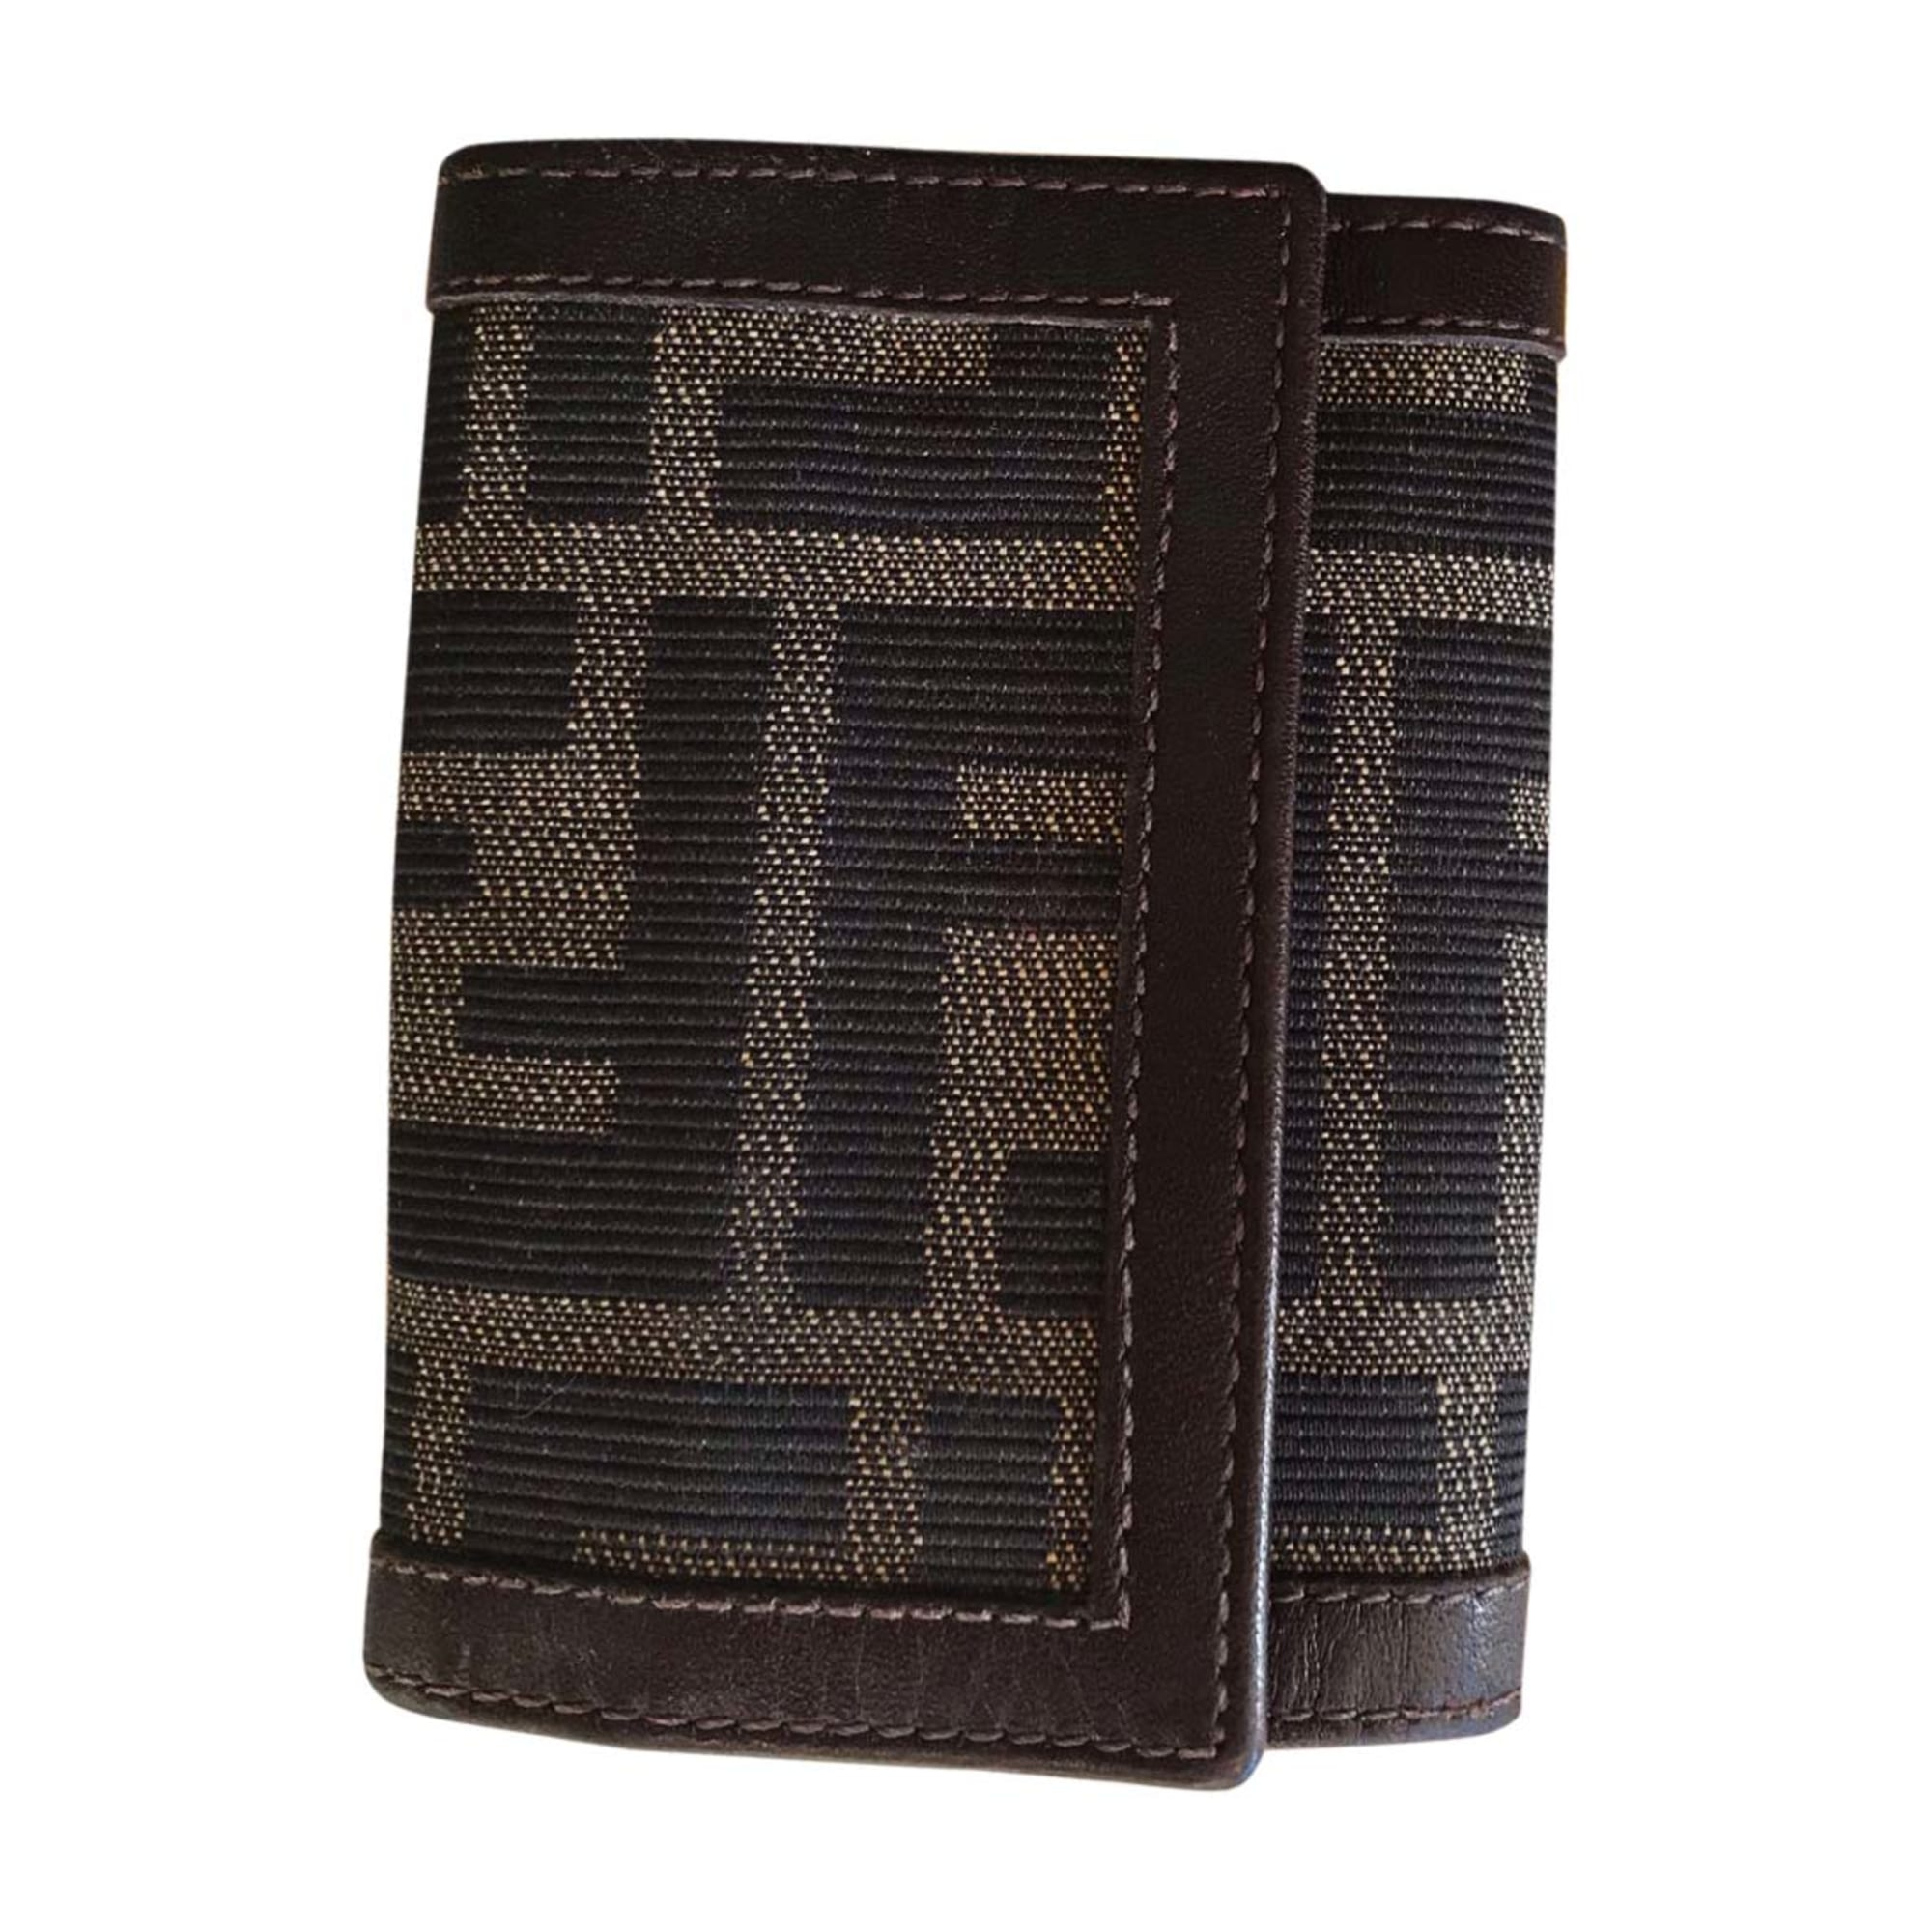 Porte documents, serviette FENDI Marron